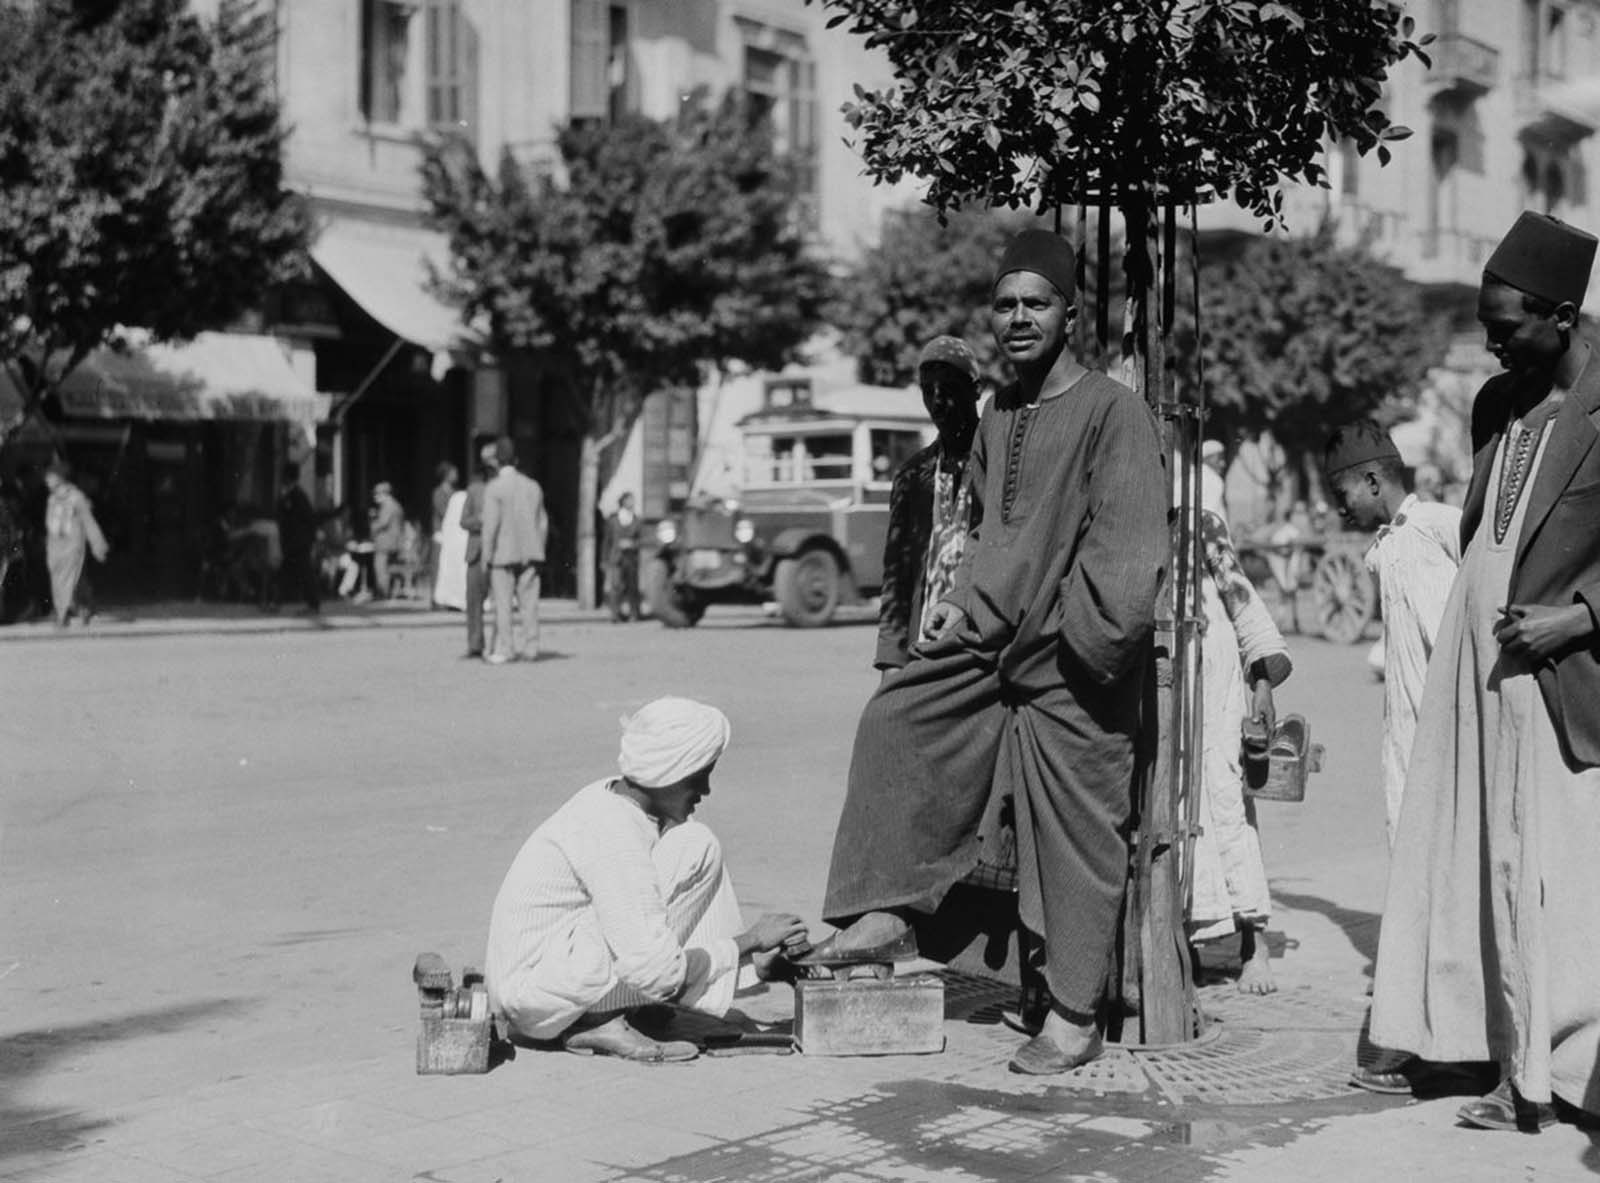 A man gets his shoes shined. 1934.